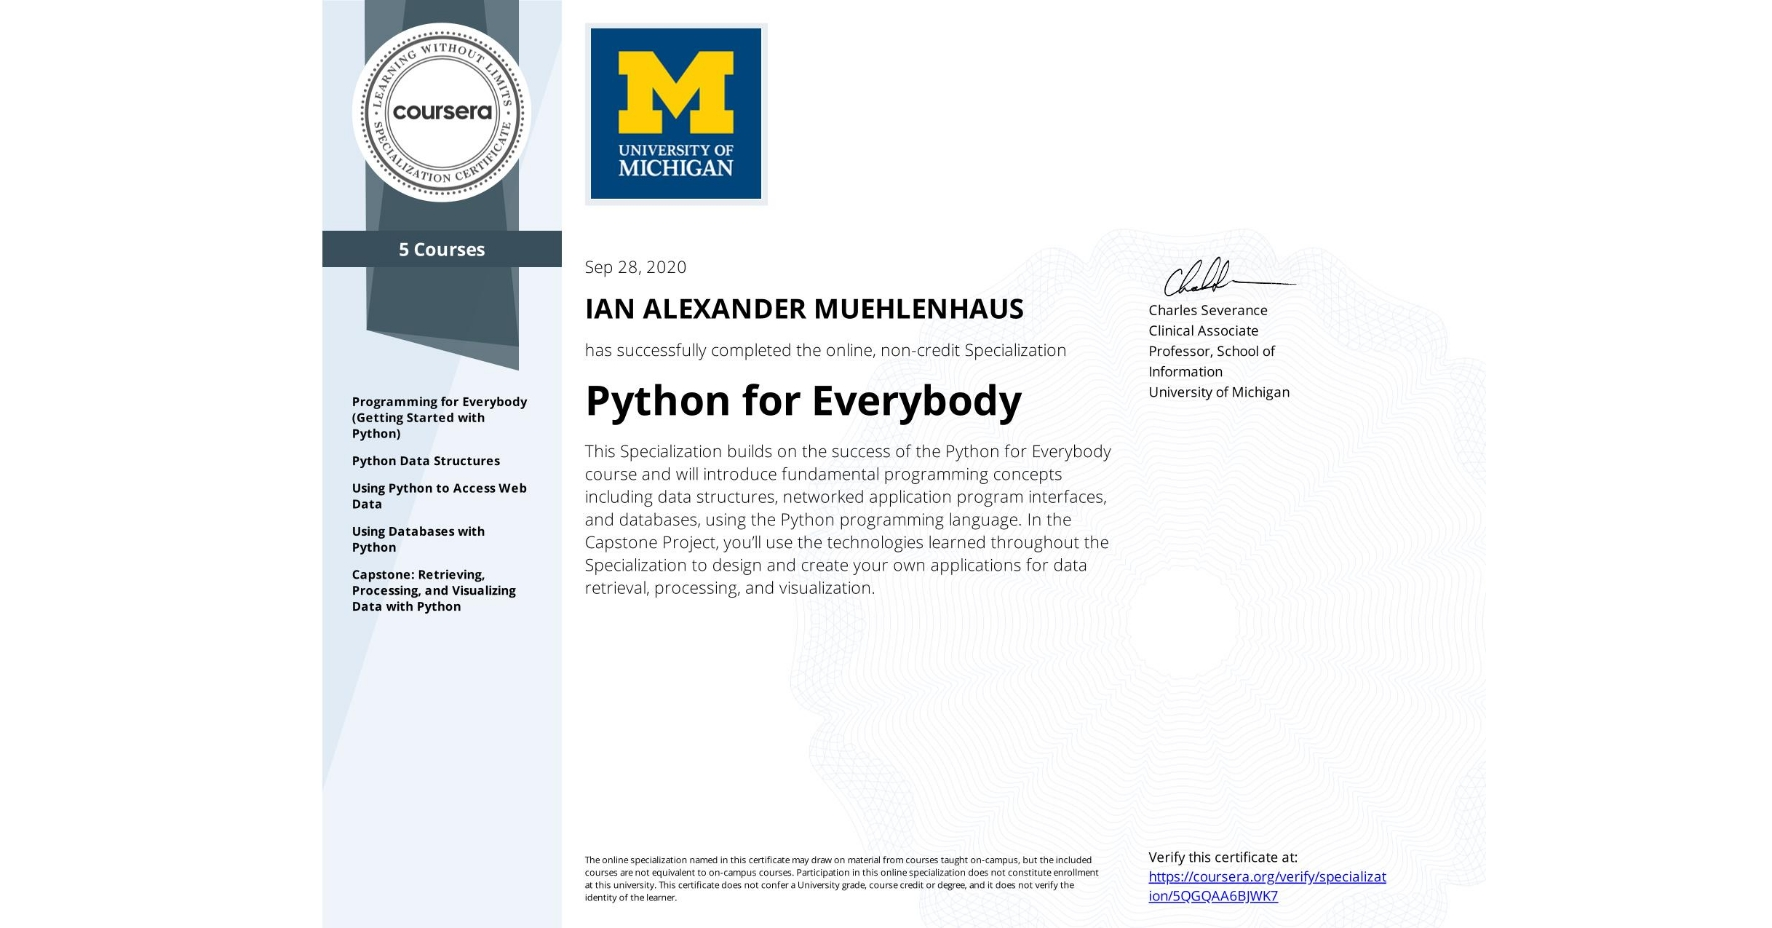 View certificate for IAN ALEXANDER  MUEHLENHAUS, Python for Everybody, offered through Coursera. This Specialization builds on the success of the Python for Everybody course and will introduce fundamental programming concepts including data structures, networked application program interfaces, and databases, using the Python programming language. In the Capstone Project, you'll use the technologies learned throughout the Specialization to design and create your own applications for data retrieval, processing, and visualization.